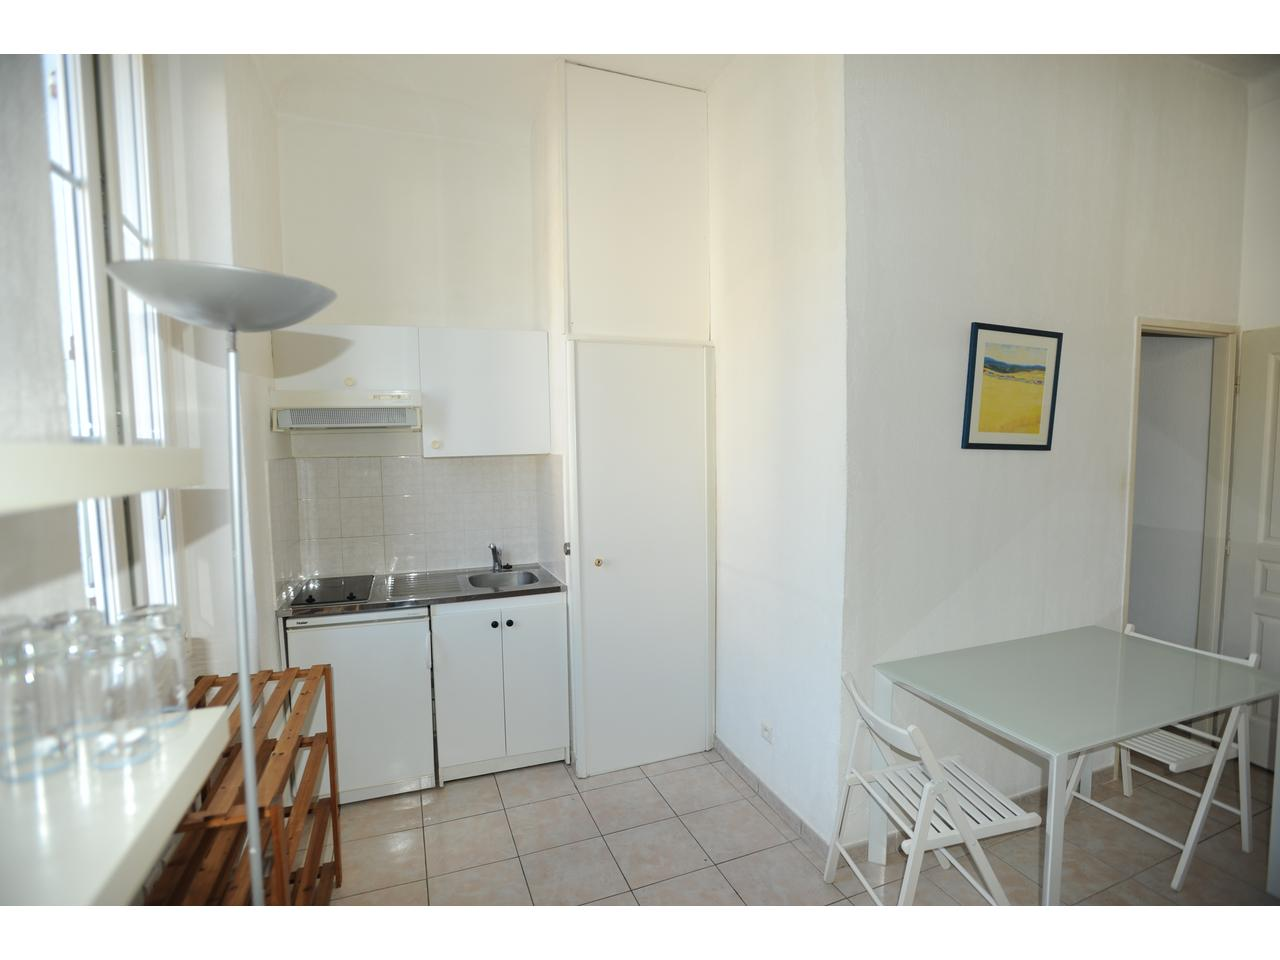 Immobilier appartement nice a louer studio meuble proche for Location studio meuble a nice